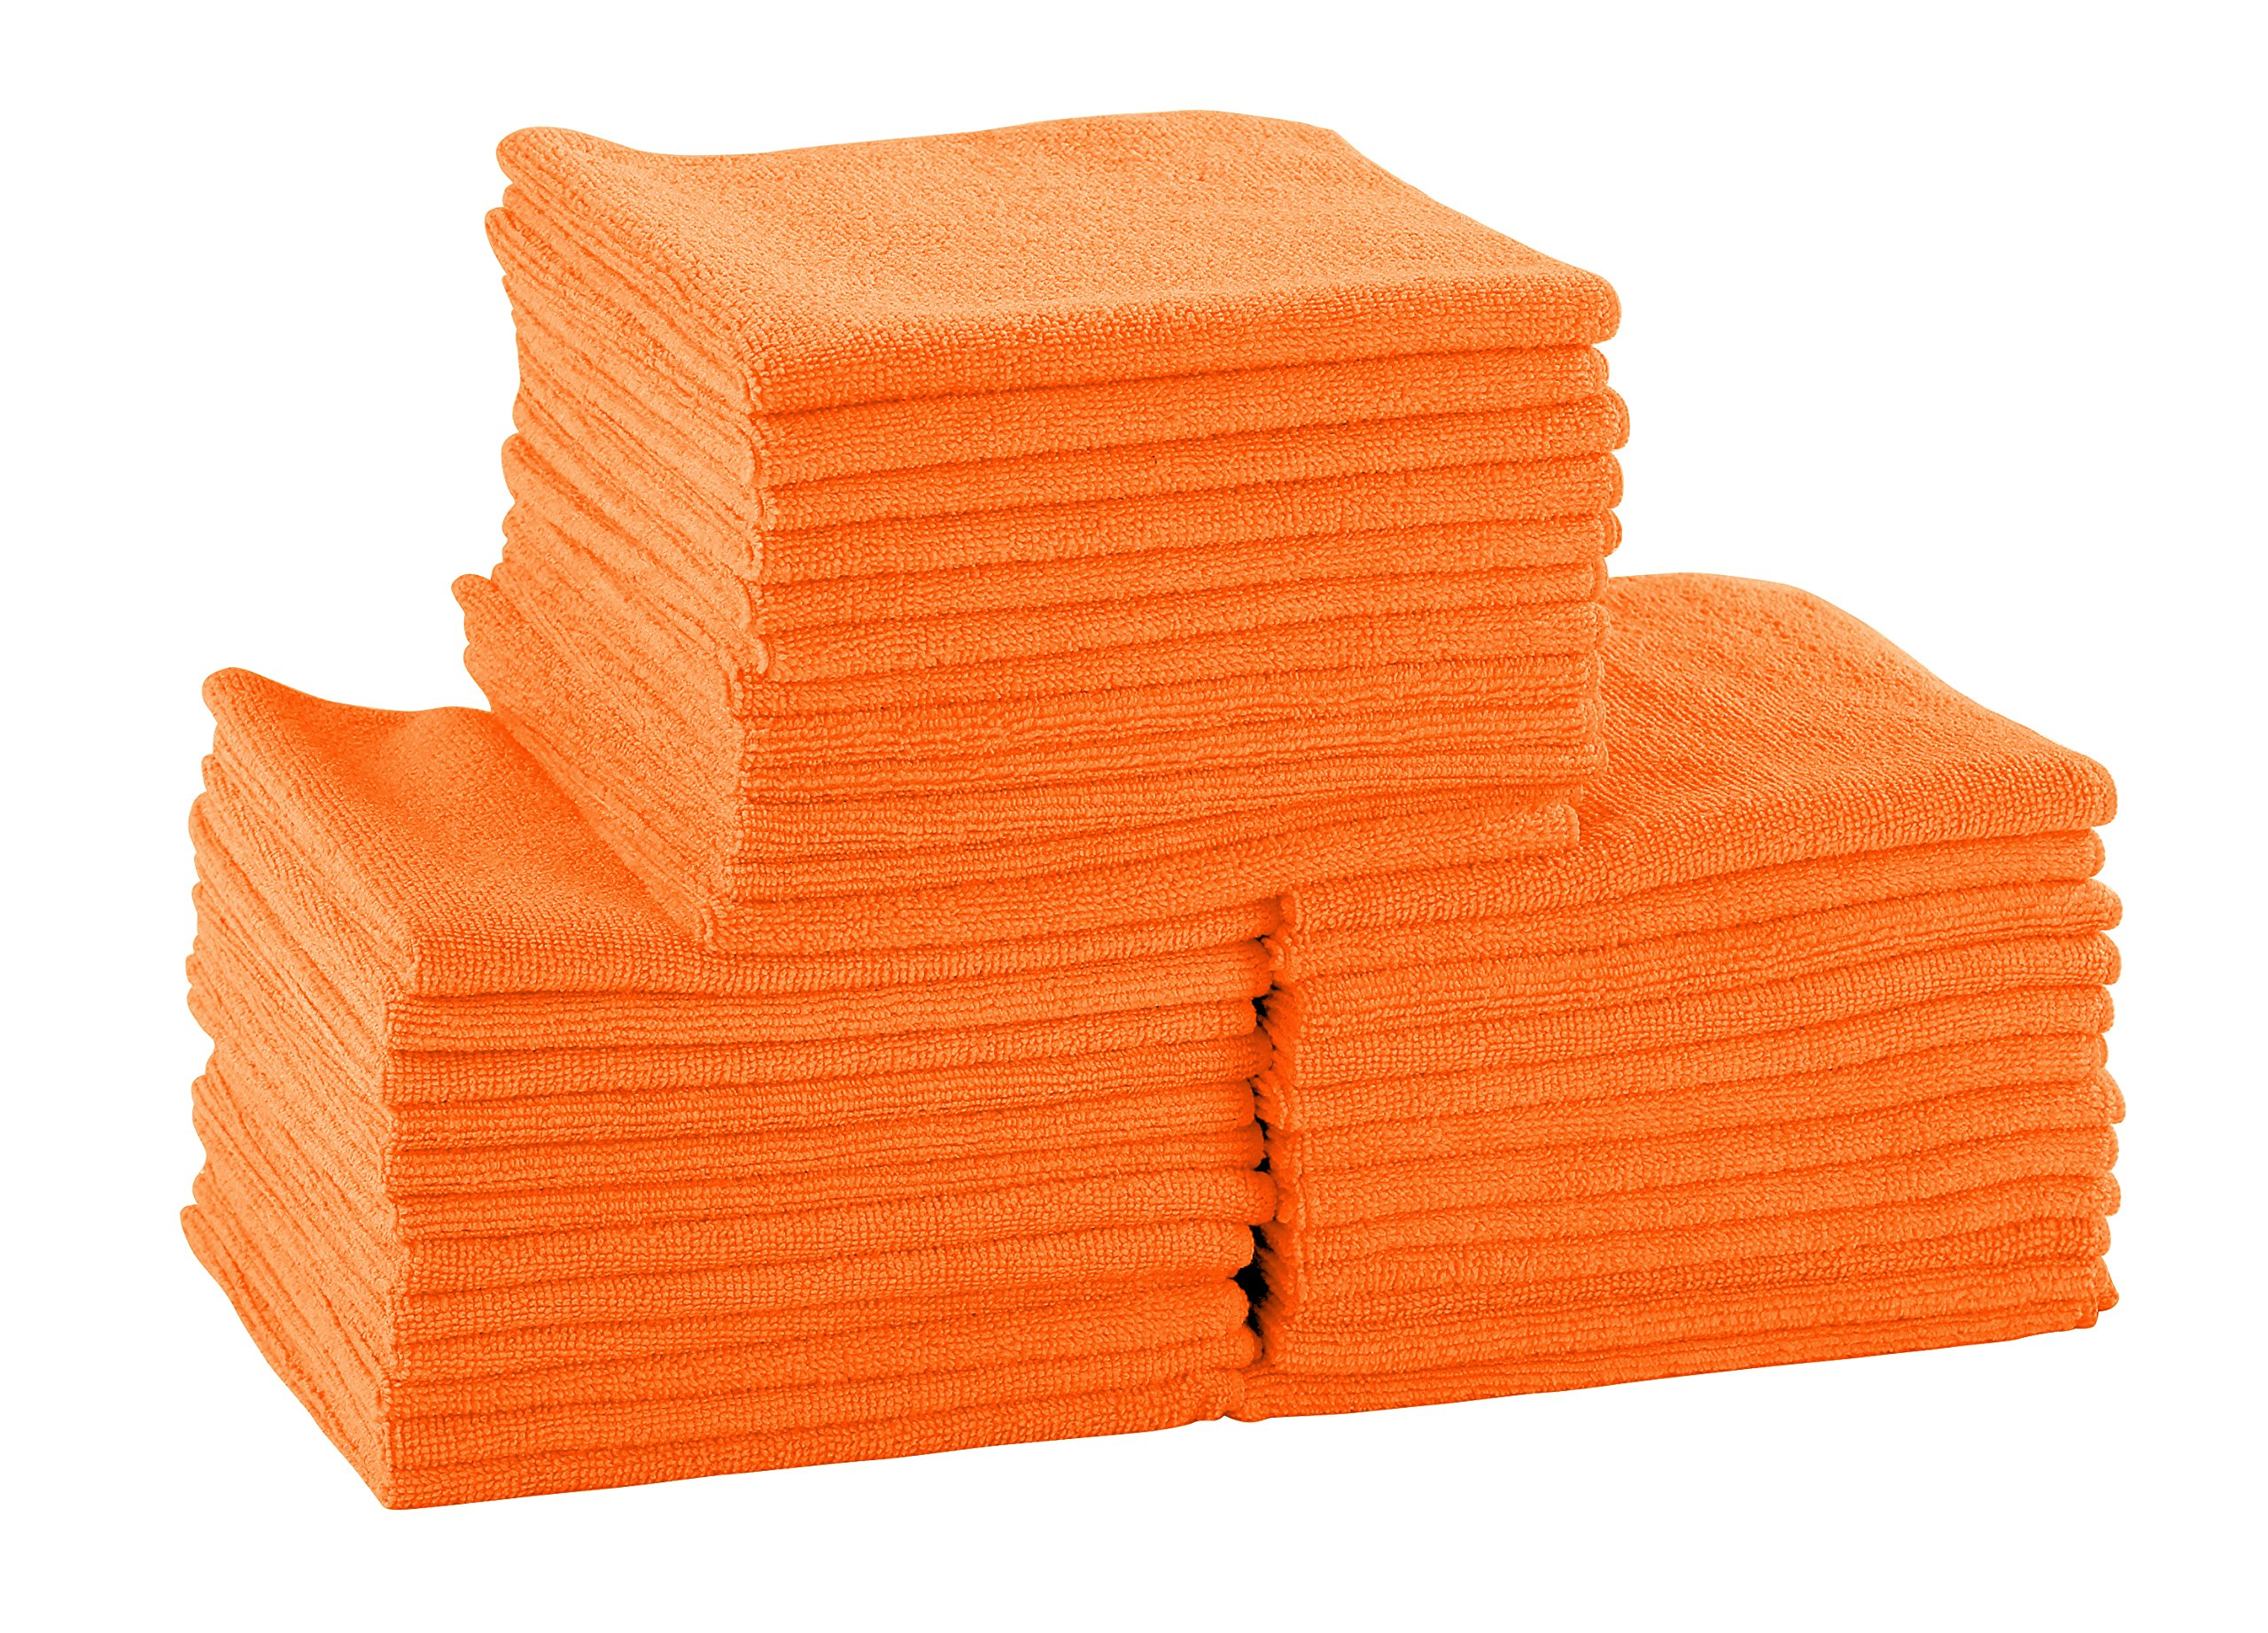 DRI Professional Extra-Thick Microfiber Cleaning Cloth - 16 in x 16 in - 72 Pack (Orange) - Ultra-Absorbent, Quick Drying, Chemical-Free Cleaning by DRI (Image #1)